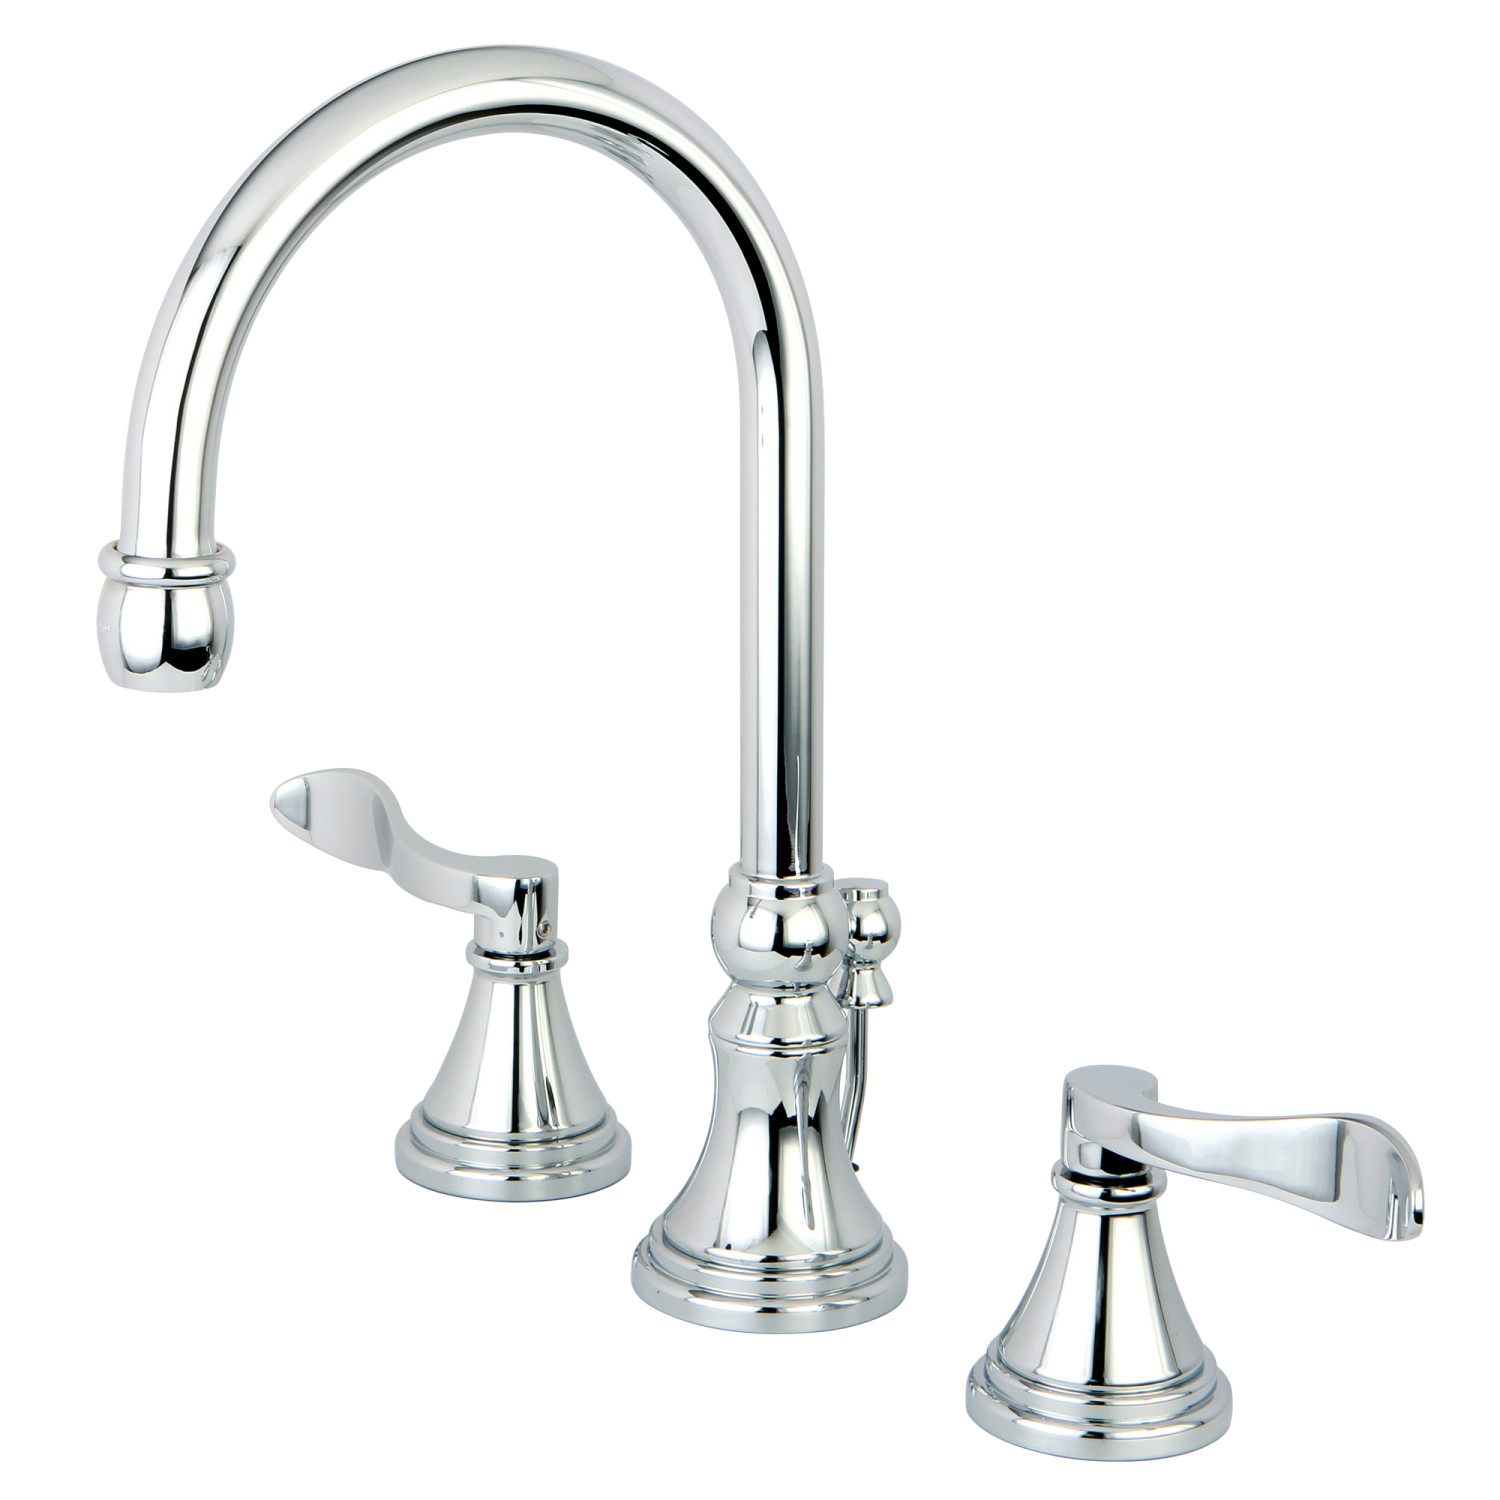 Traditional Two-Handle 3-Hole Deck Mounted Widespread Bathroom Faucet Brass Pop-Up with Polished Chrome